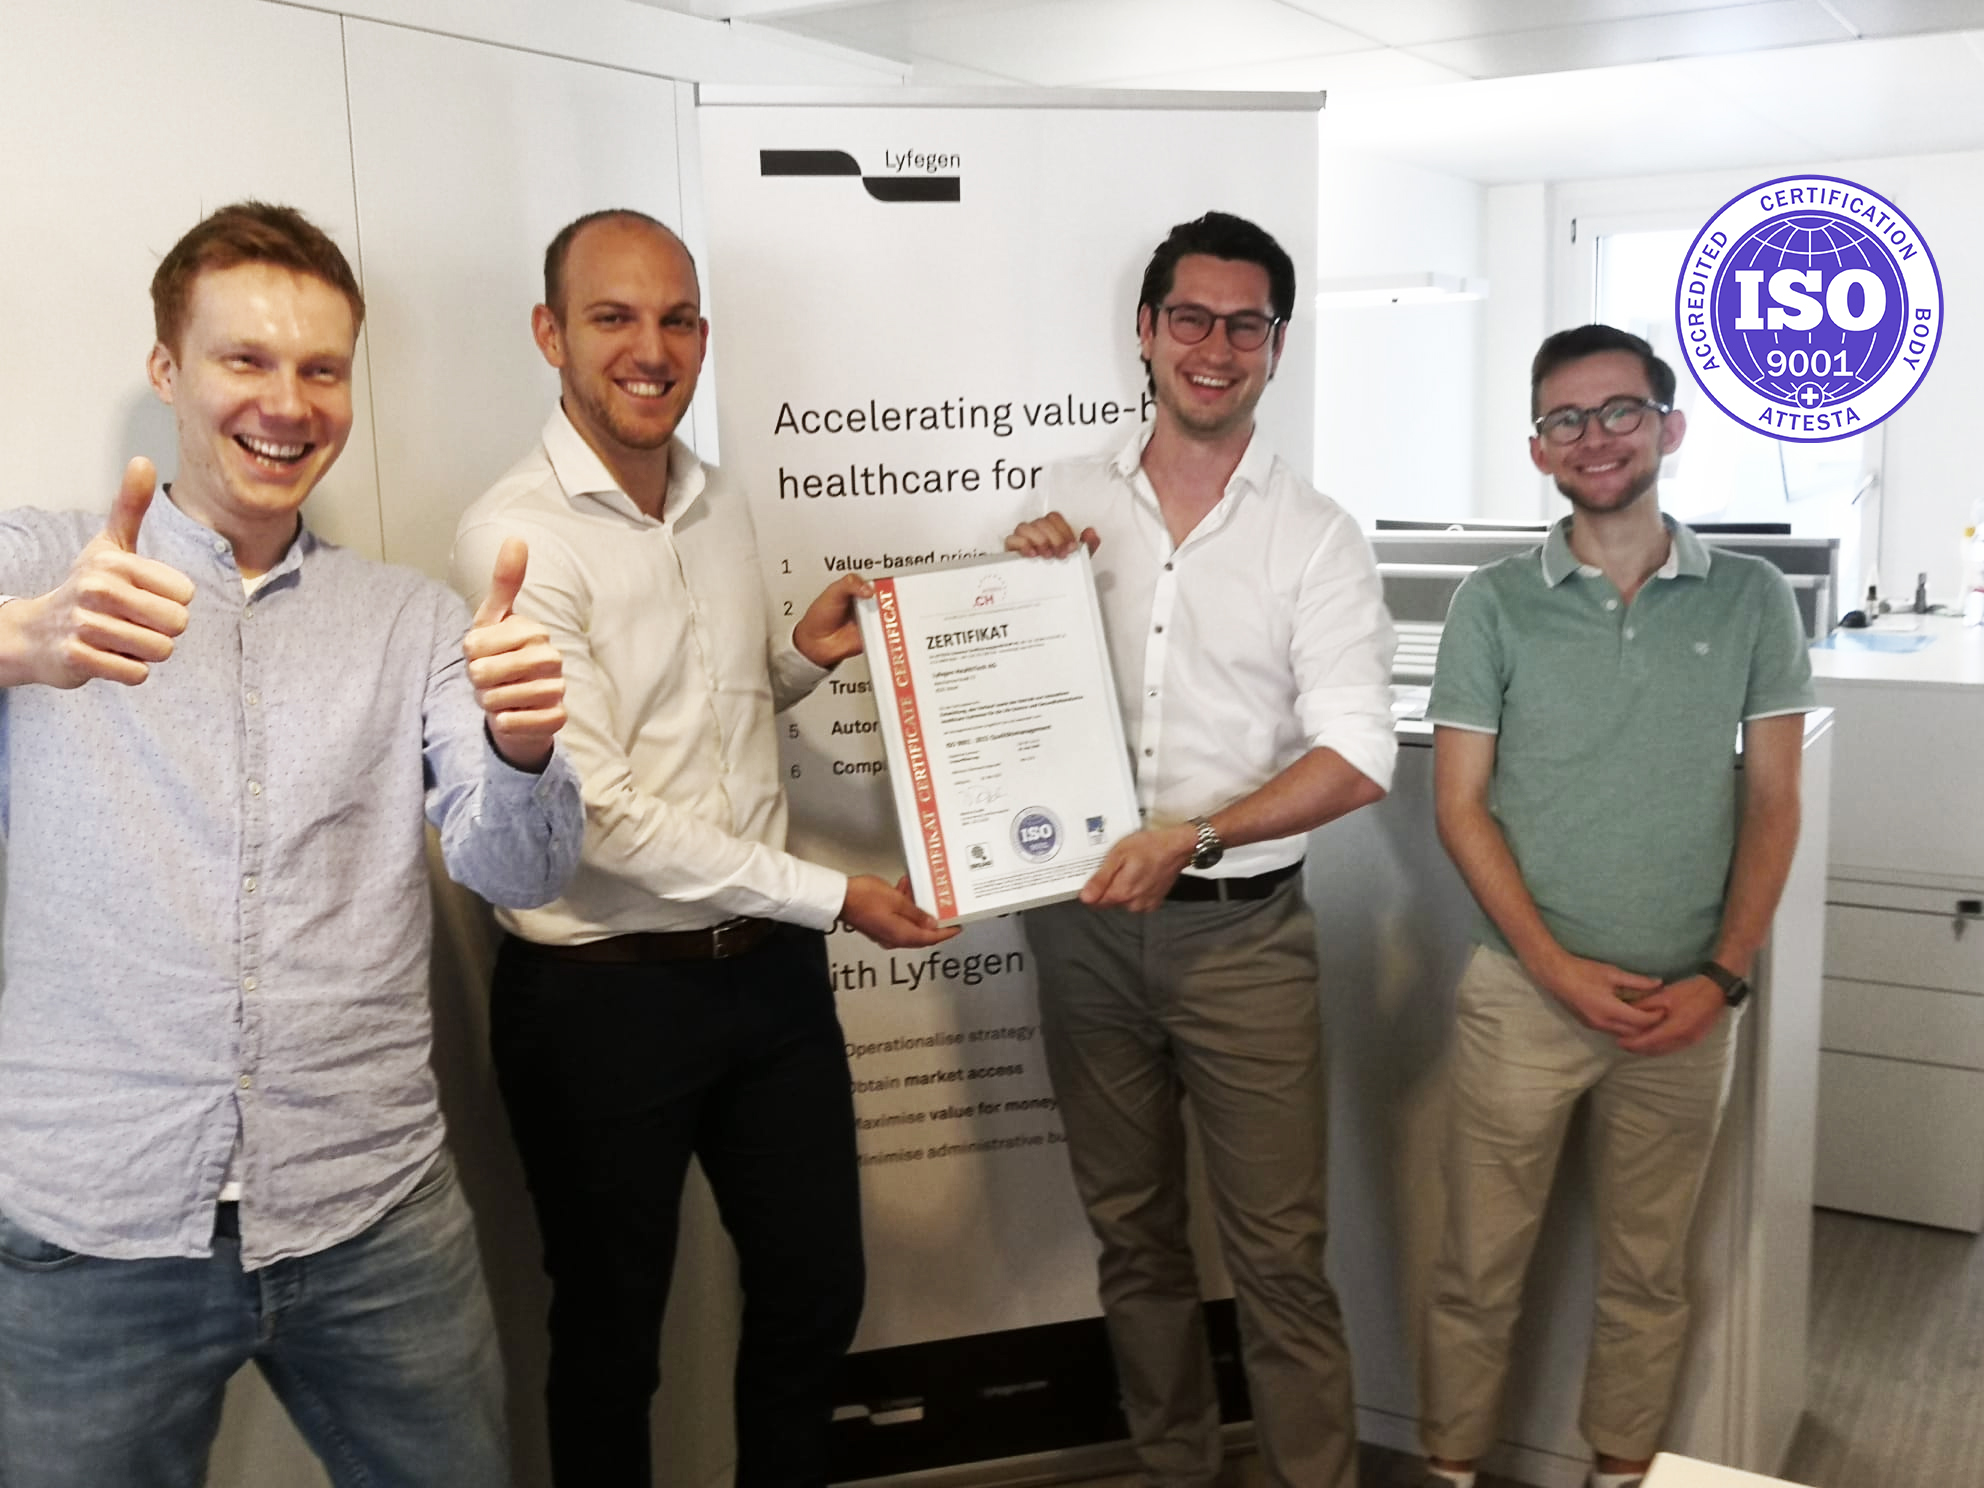 At Lyfegen customers are at the centre of our heart! We are proud to announce that we are ISO 9001:2015 certified!